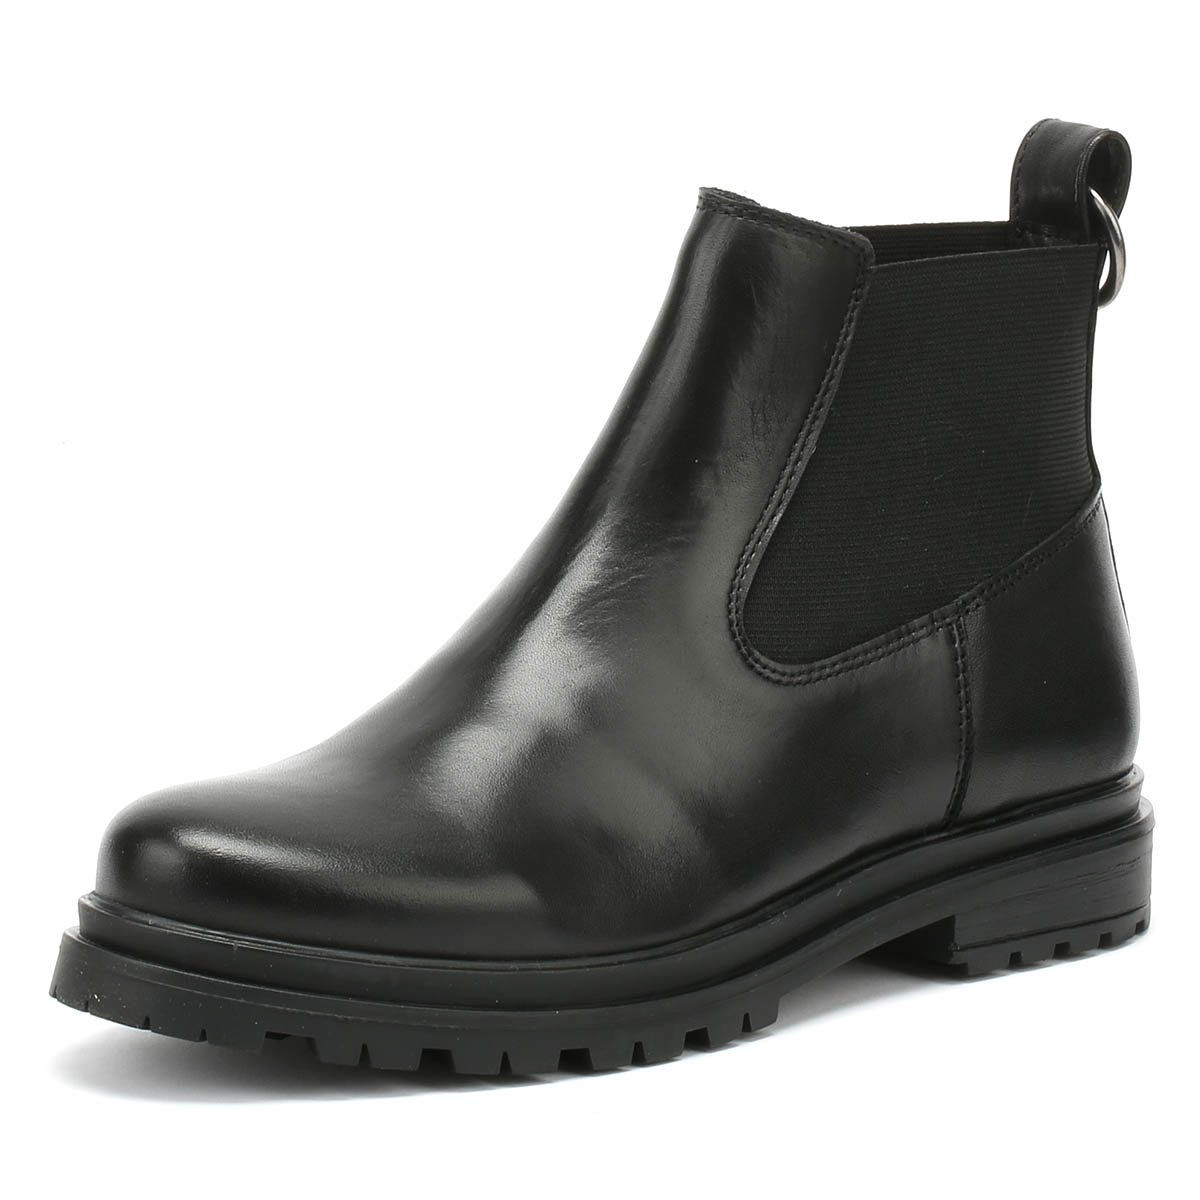 SHOE THE BEAR Akira Womens Boots Black Leather Slip On